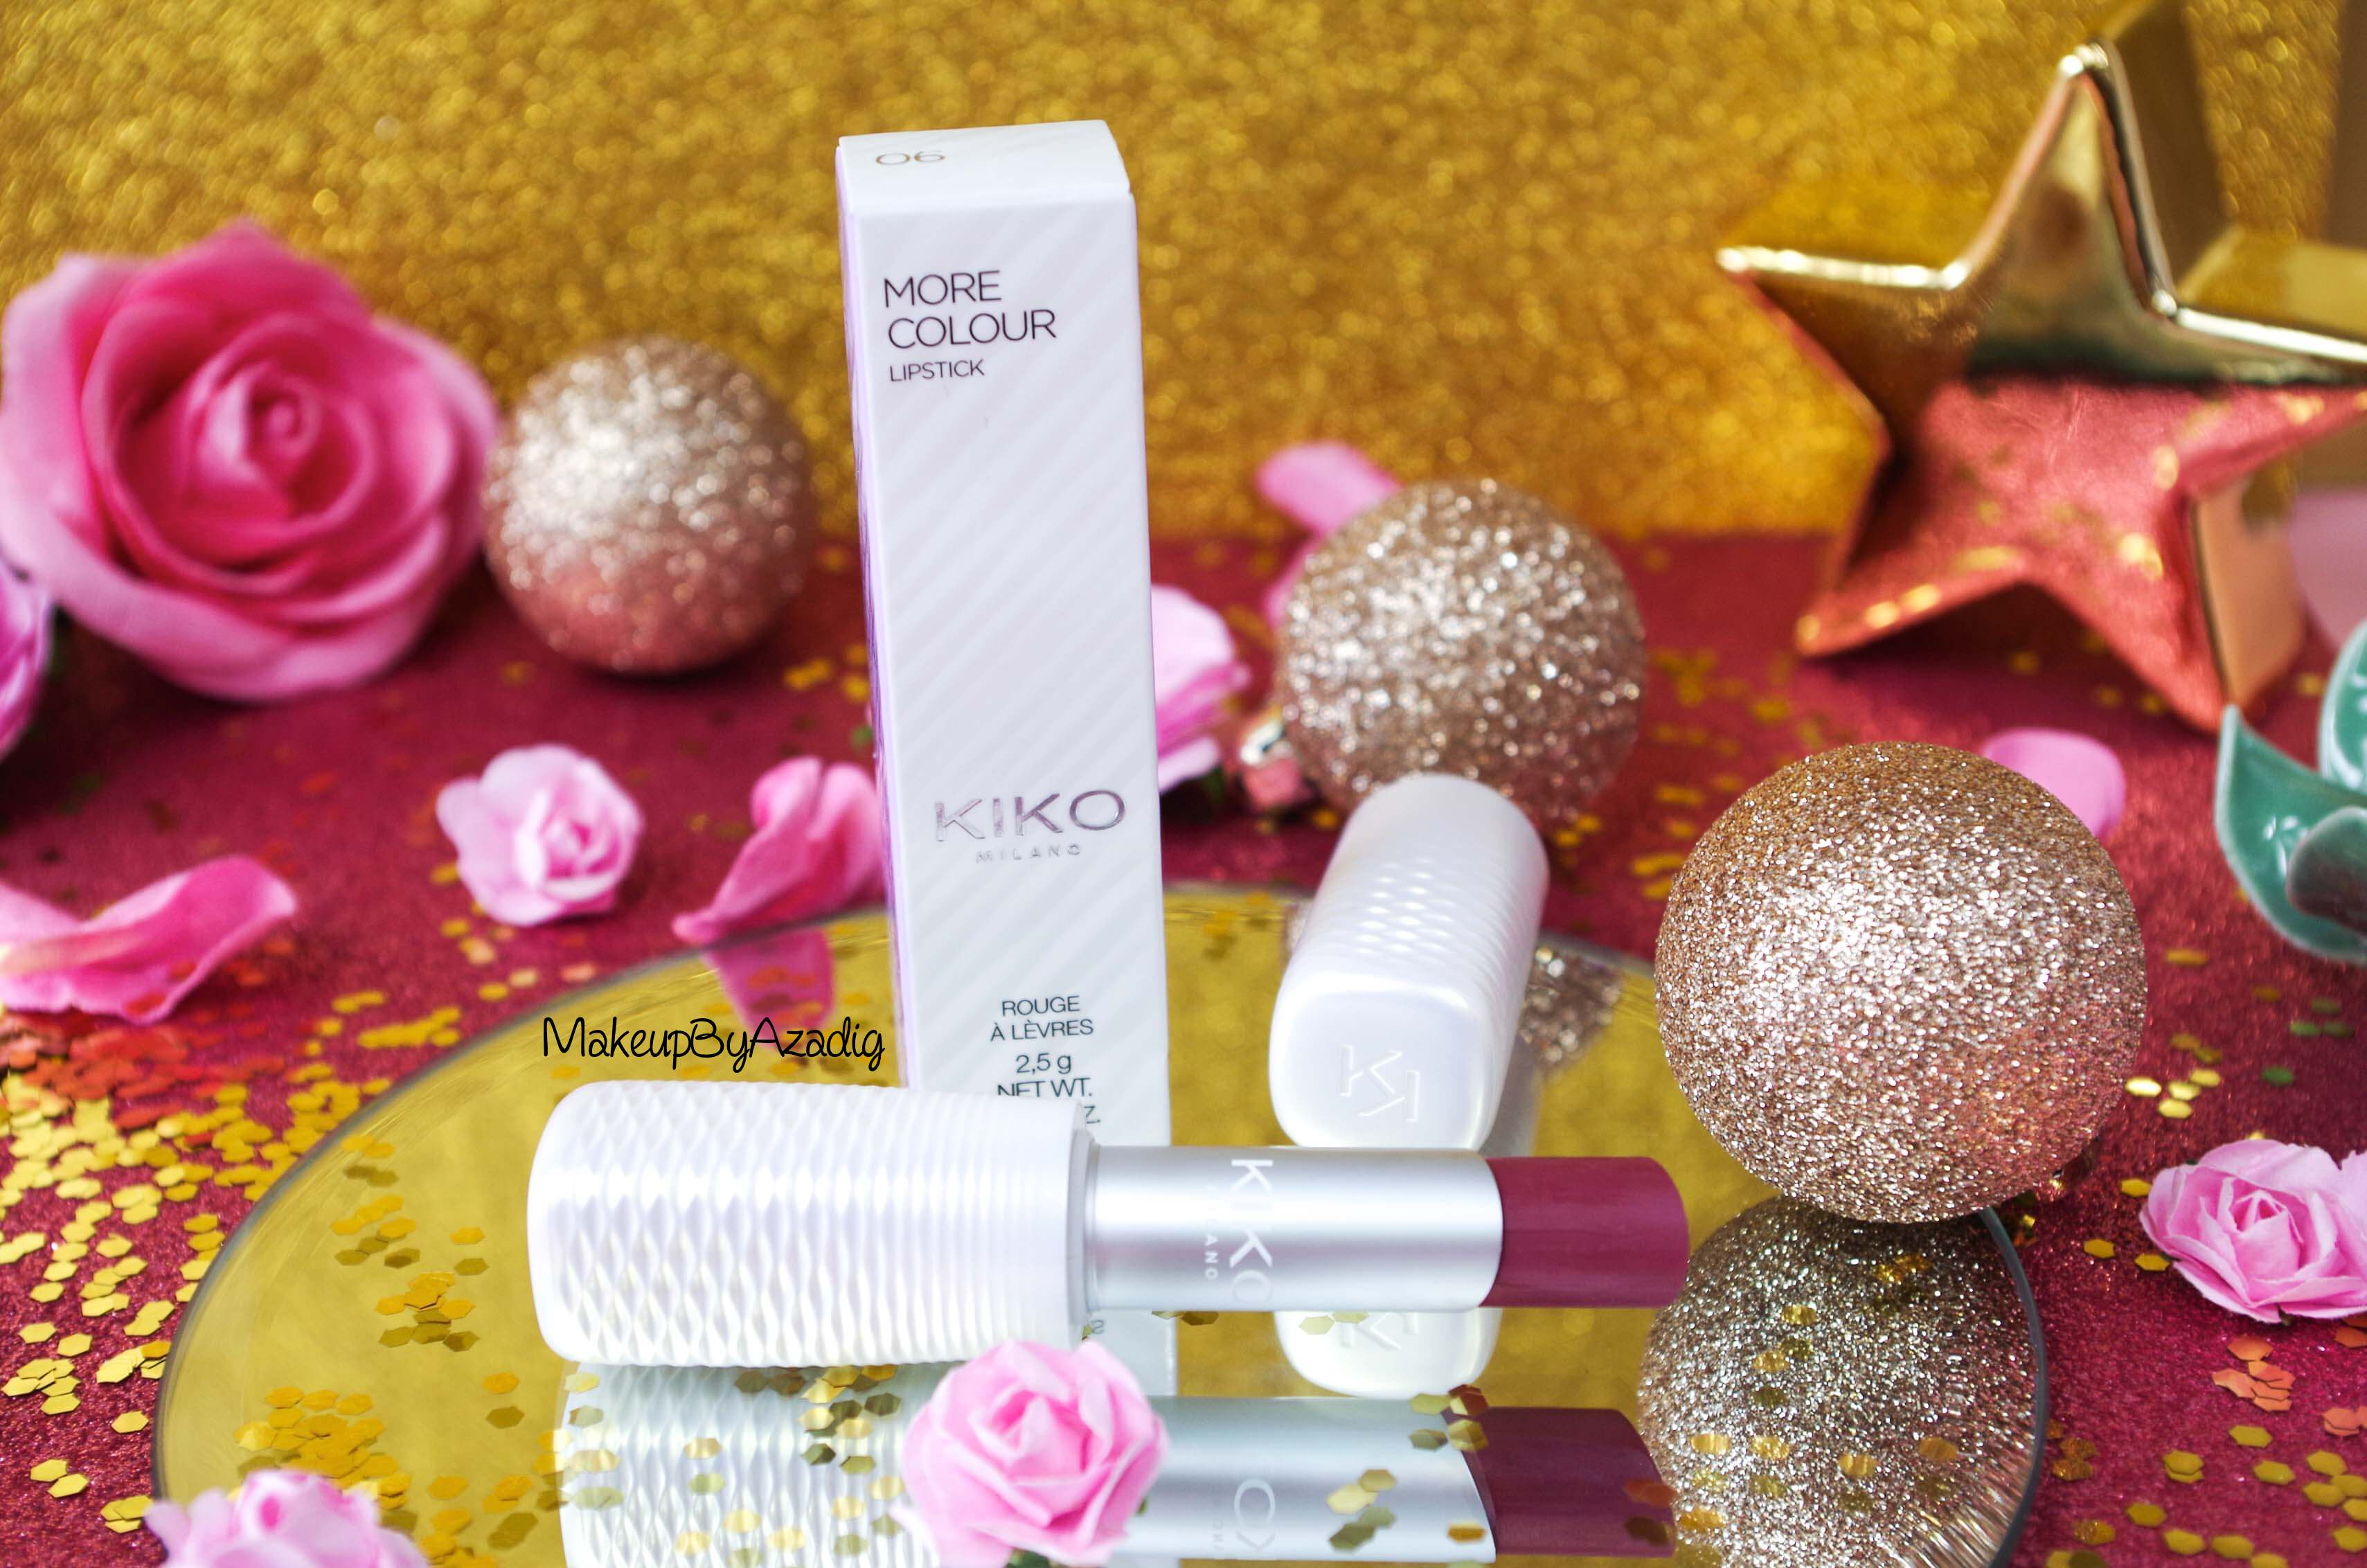 marque-revue-rouge-levres-kiko-cosmetics-more-colour-lipstick-avis-swatch-prix-troyes-blog-review-makeupbyazadig-milano-freedom-mauve